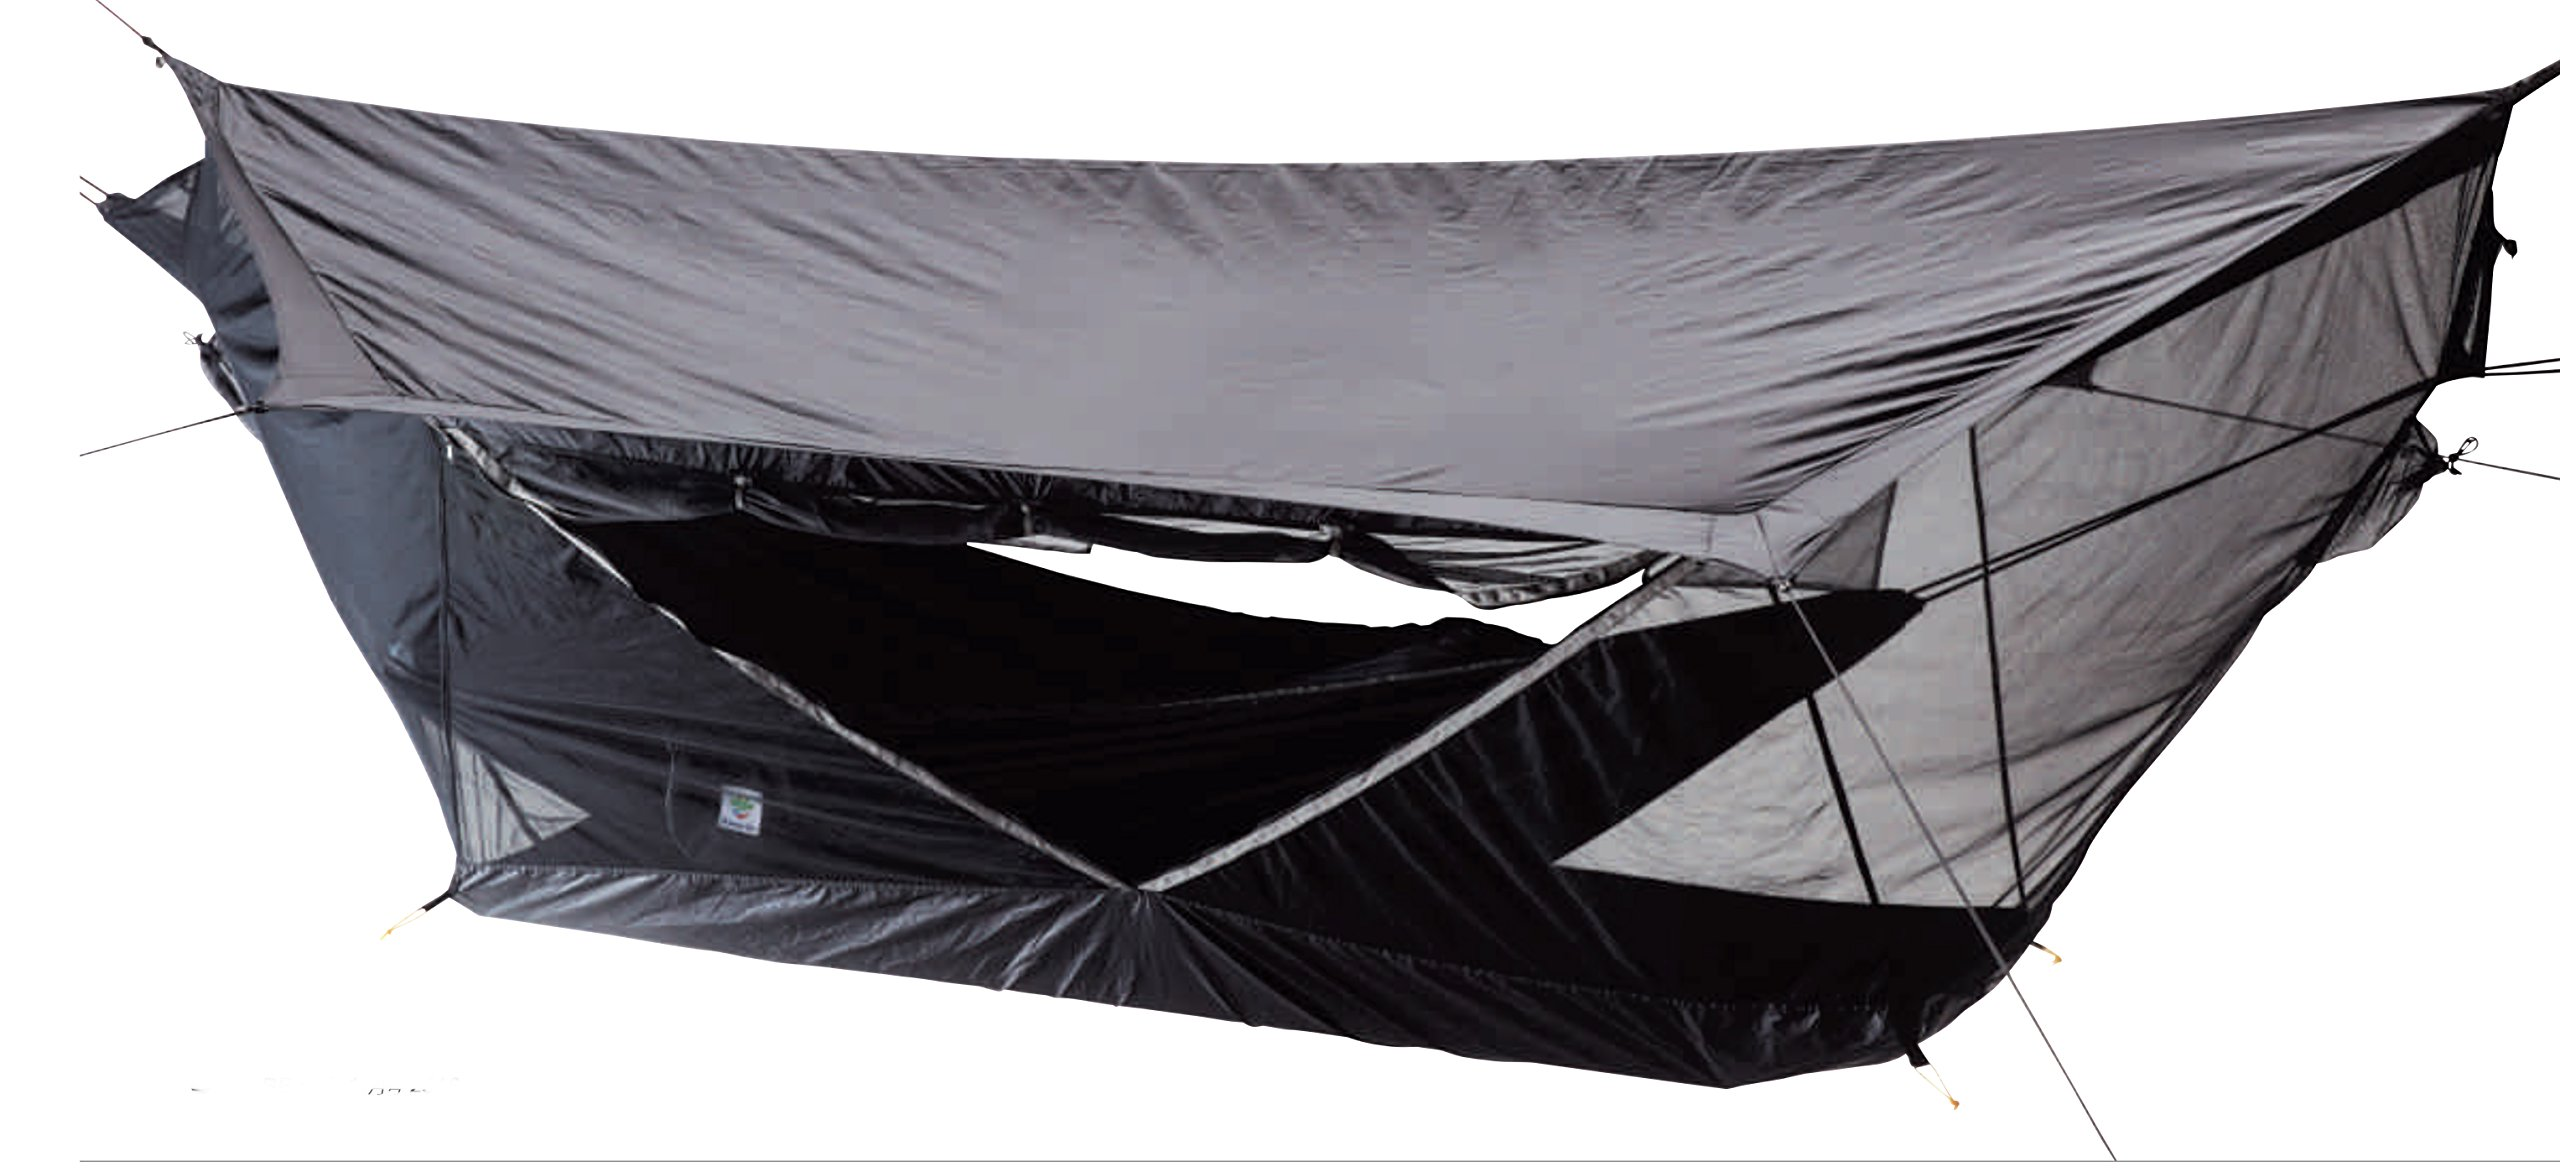 Hammock Bliss Sky Tent 2 - A Revolutionary 2 Person Hammock Tent - Waterproof and Bug Proof Hanging Tent Provides Spacious and Cozy Shelter For 2 Camping Hammocks - Embrace Hammock Camping Comfort by Hammock Bliss (Image #3)